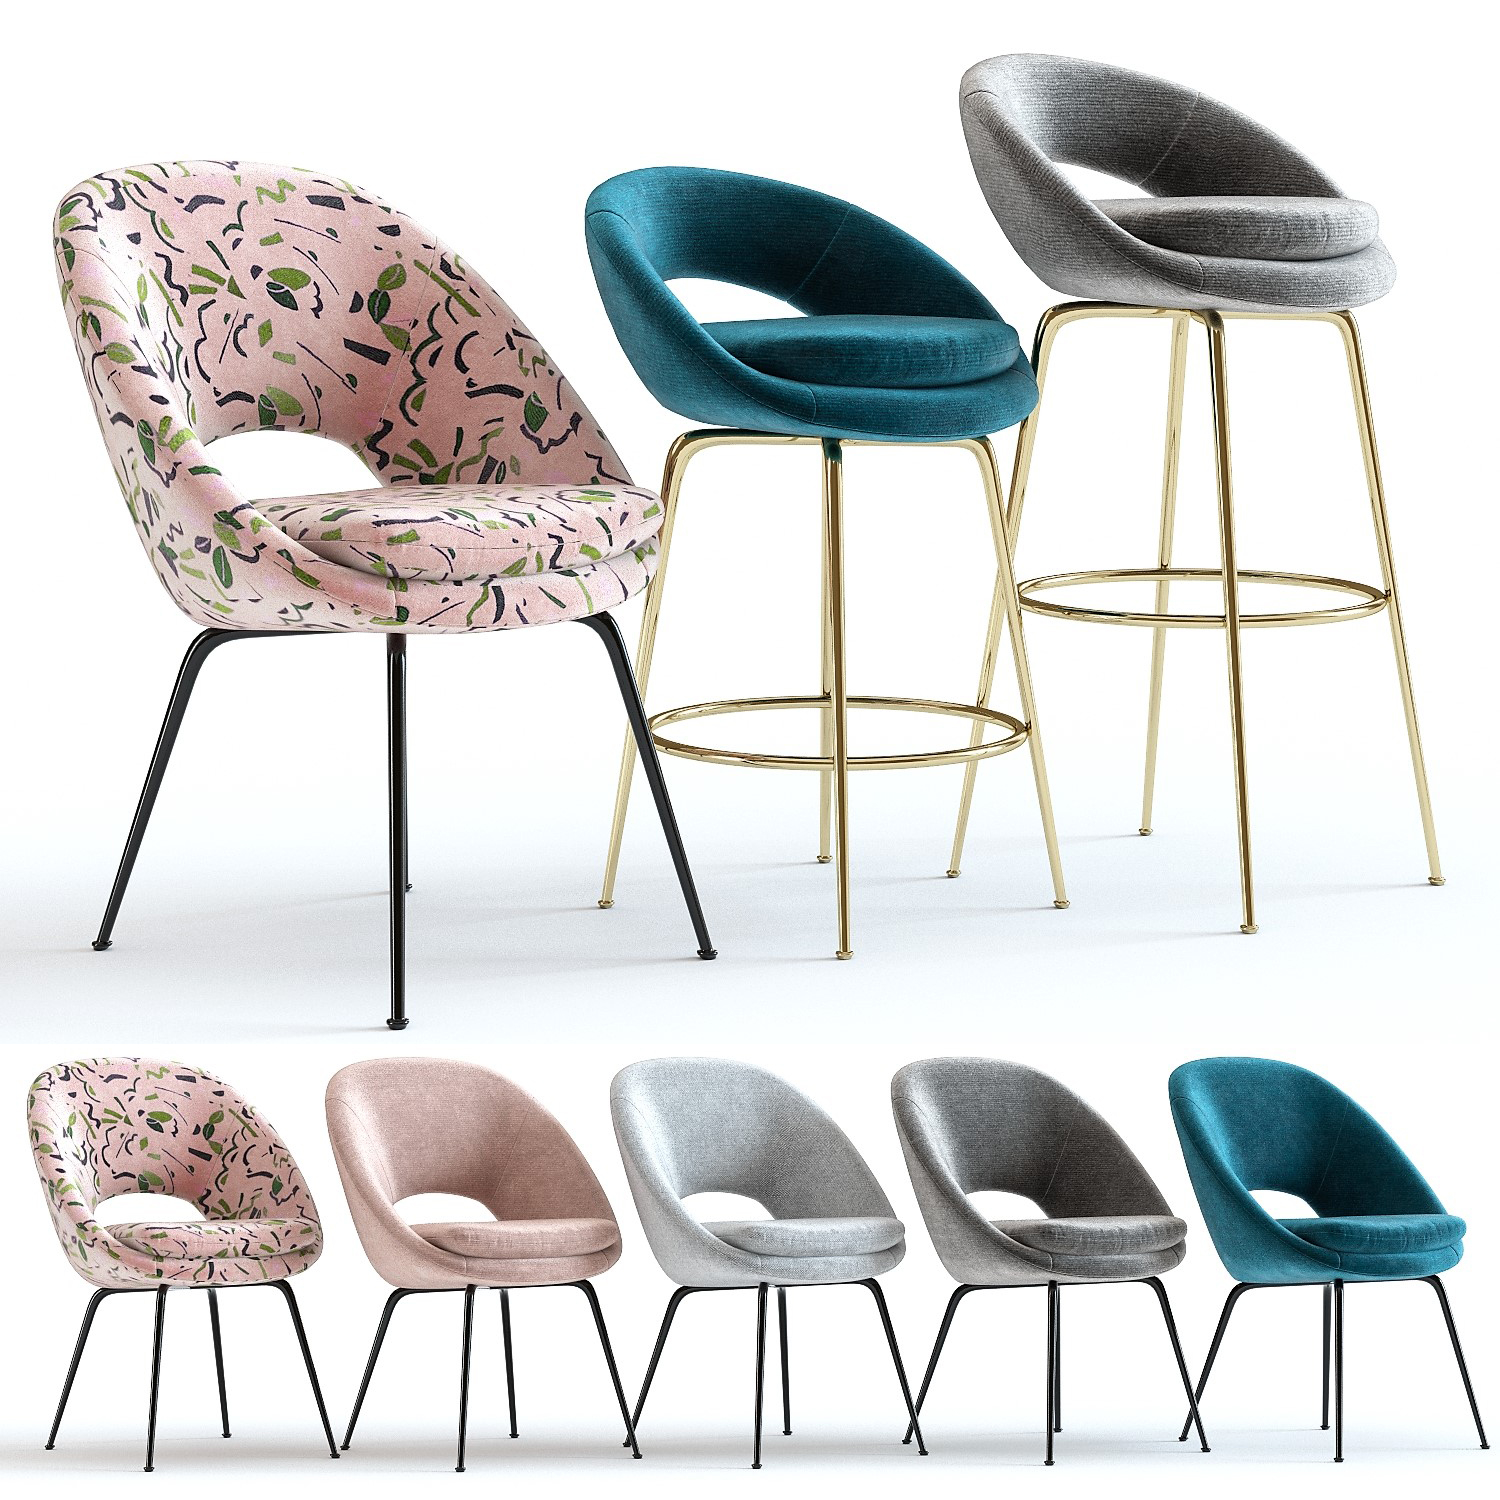 Incredible West Elm Orb Dining Chair Gmtry Best Dining Table And Chair Ideas Images Gmtryco